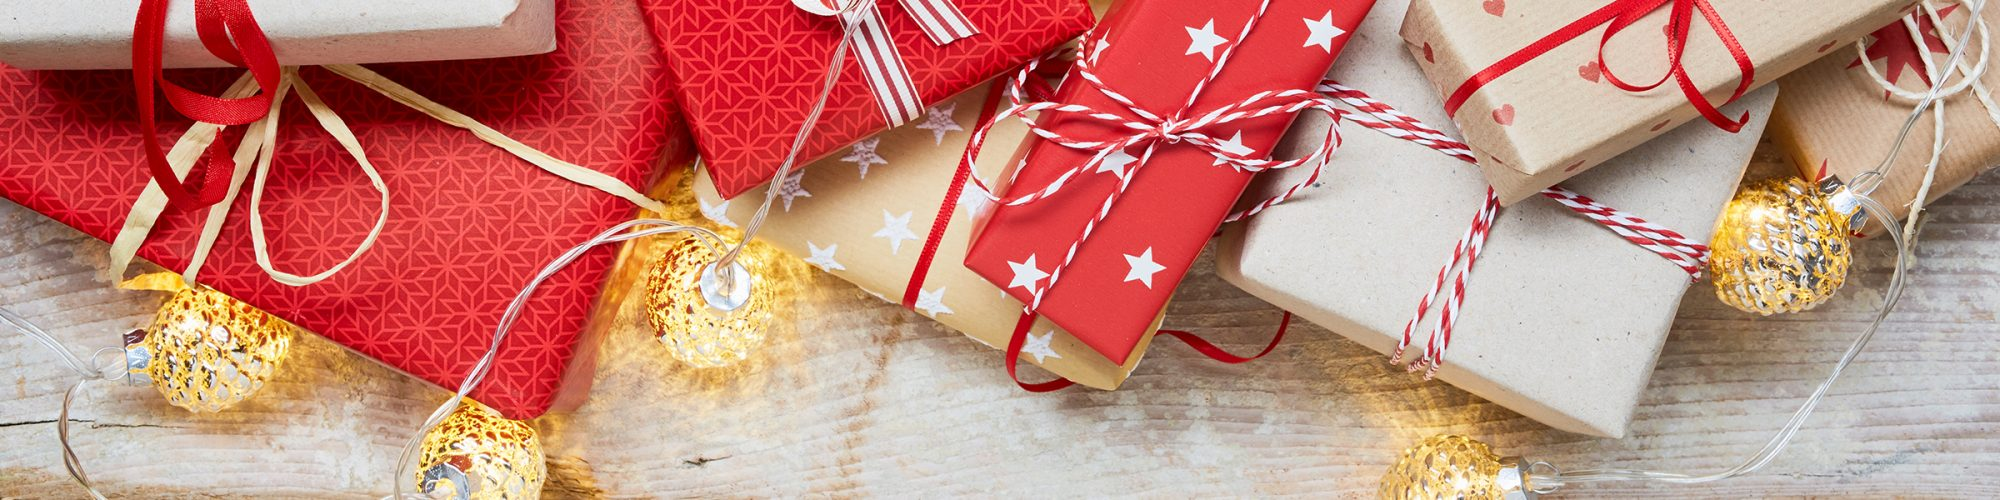 Christmas banner - presents or gifts and lights